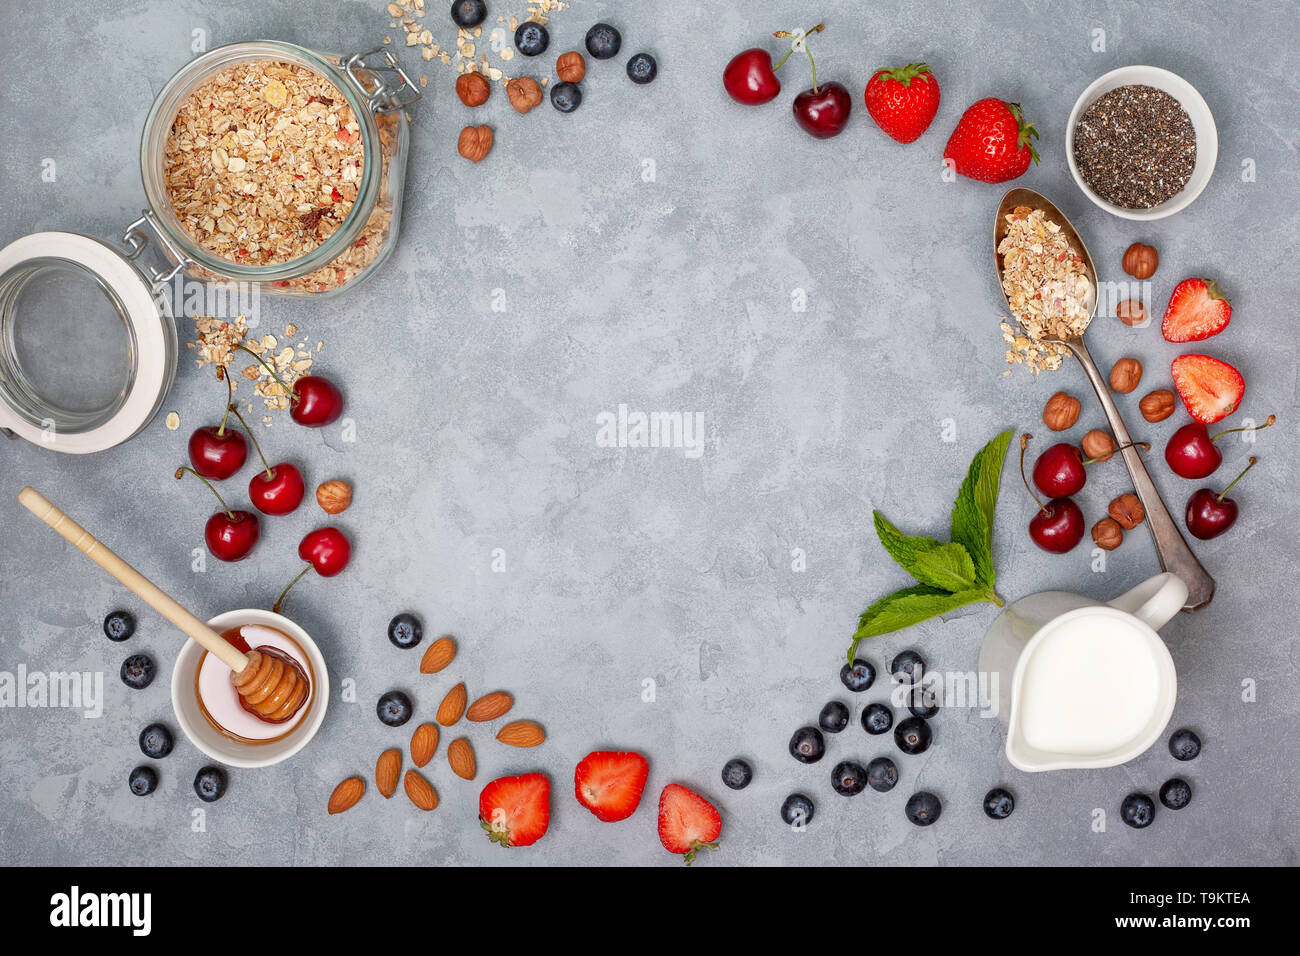 ingredients for breakfast: granola, chia seeds, fresh berries and nuts on a gray background. view from above. Stock Photo